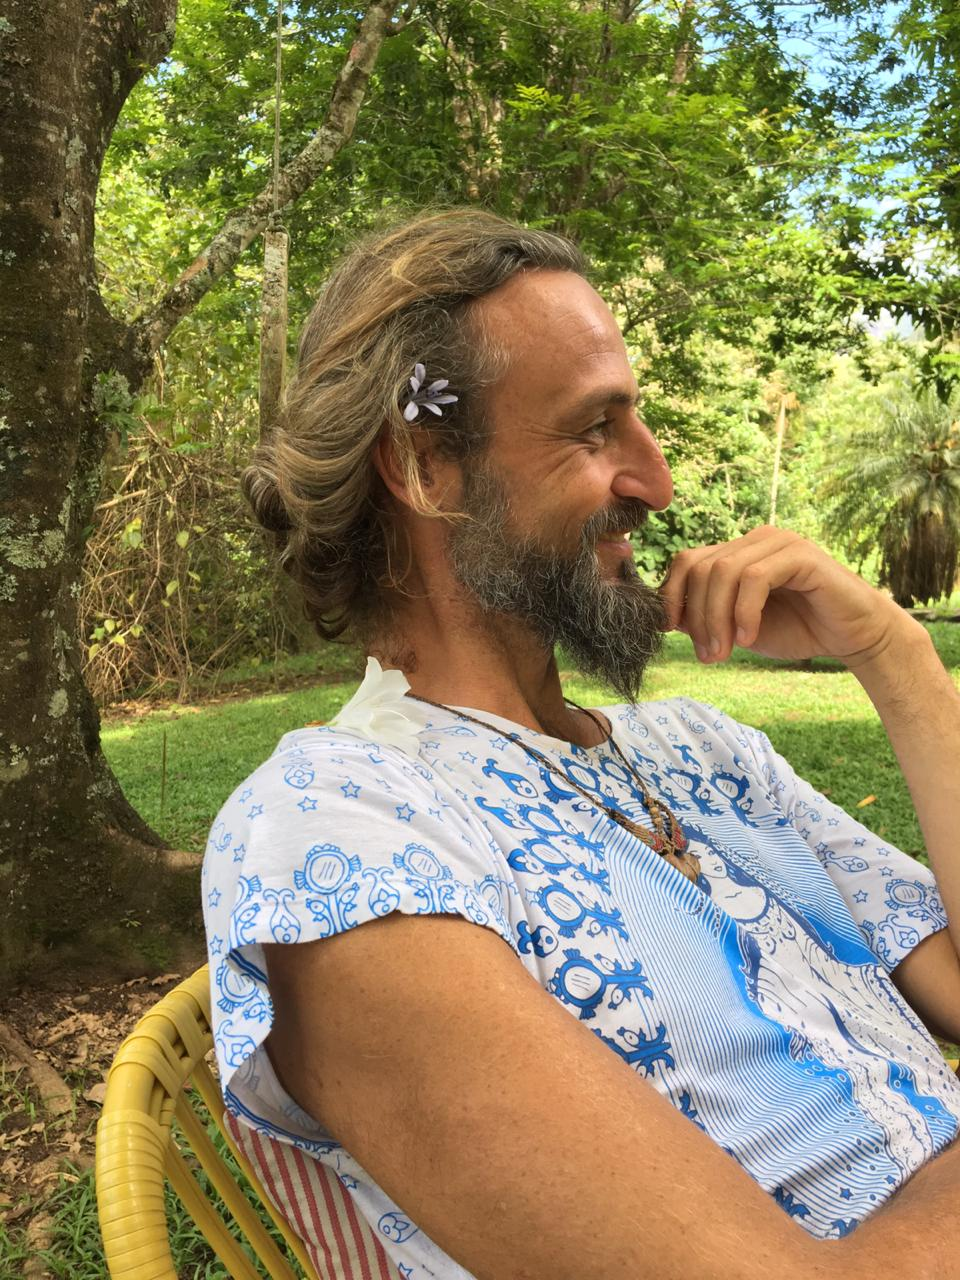 Grégory Puente, the Nima, at the beginning of a retreat in Brazil, 2018.